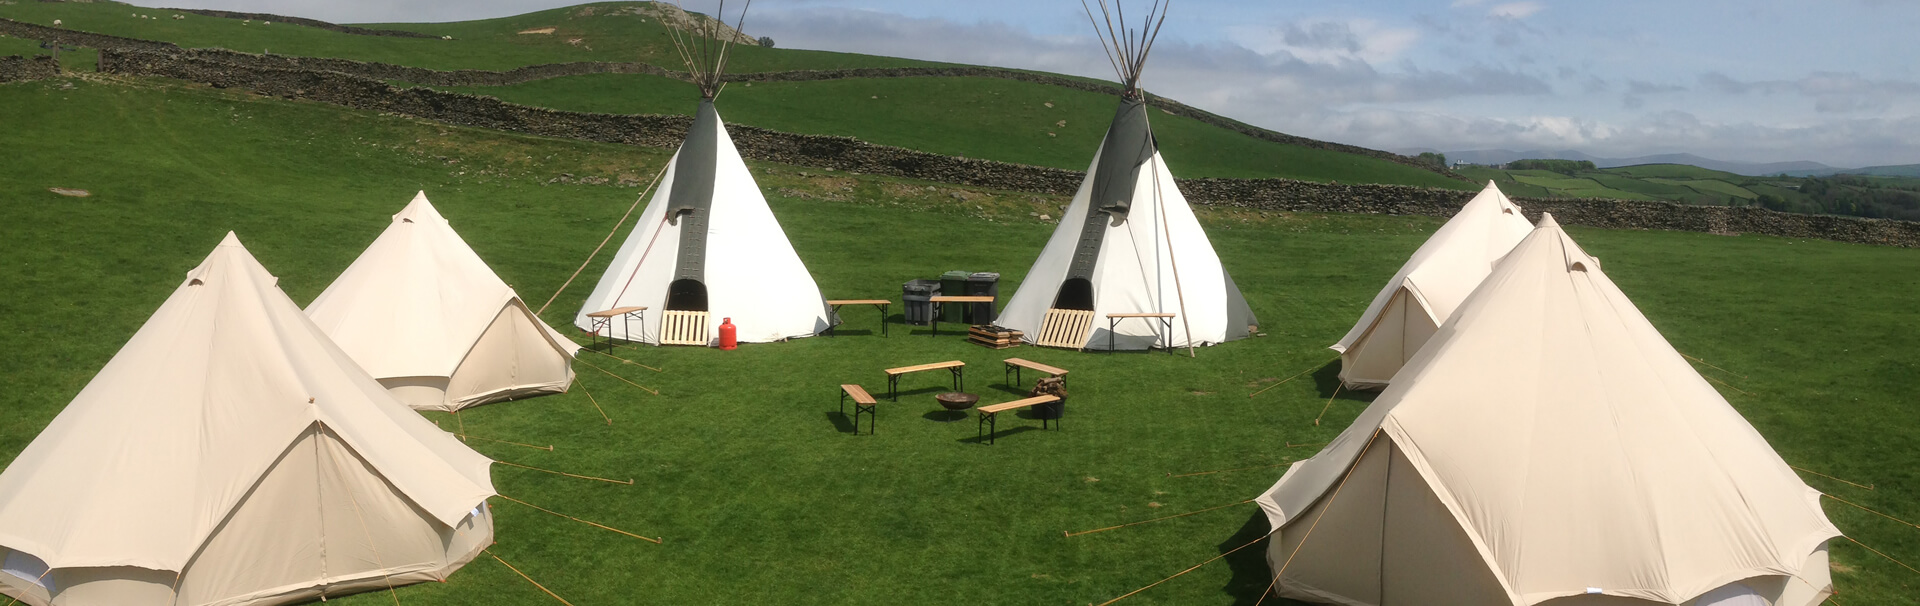 & Tipi u0026 Bell Tent Hire Lake District Camping - Nomad Events